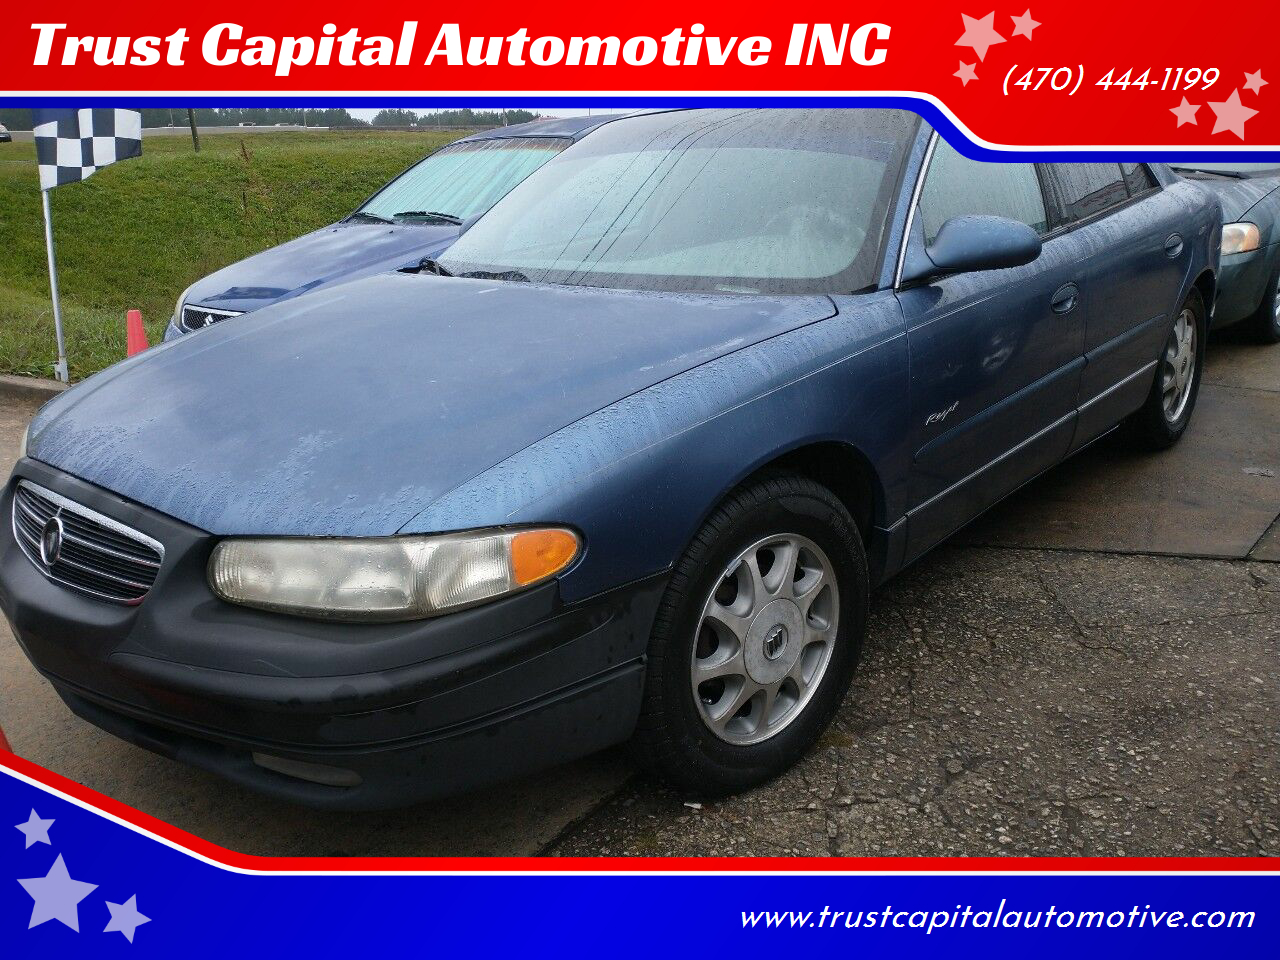 used 1998 buick regal for sale carsforsale com used 1998 buick regal for sale